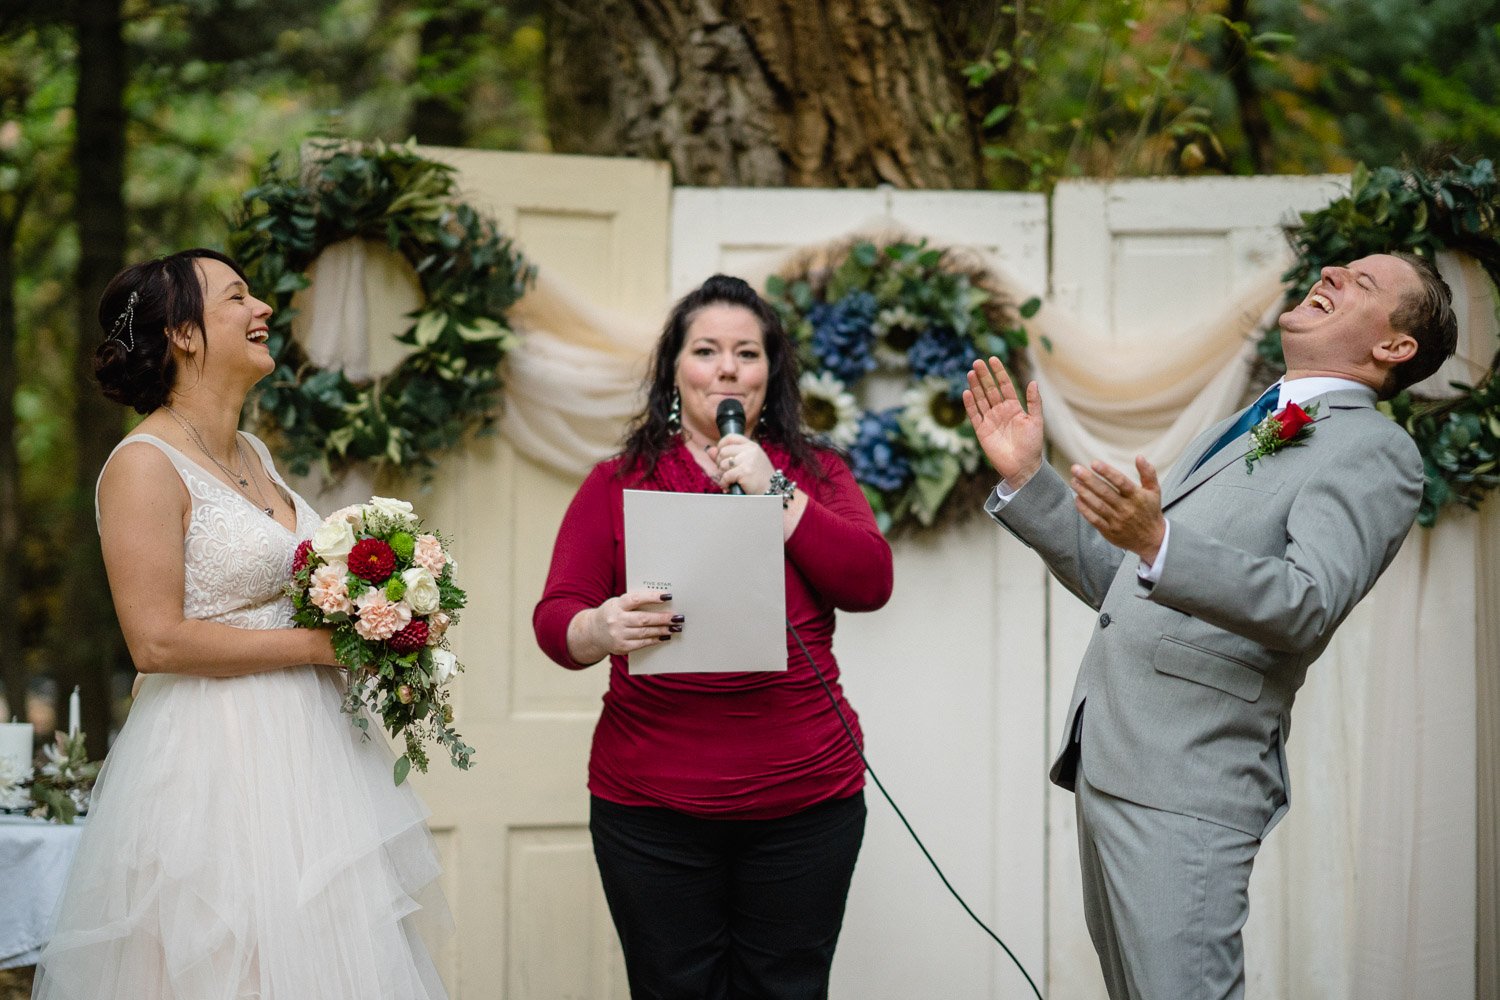 officiant at outdoor altar making bride and groom laugh millcreek canyon wedding